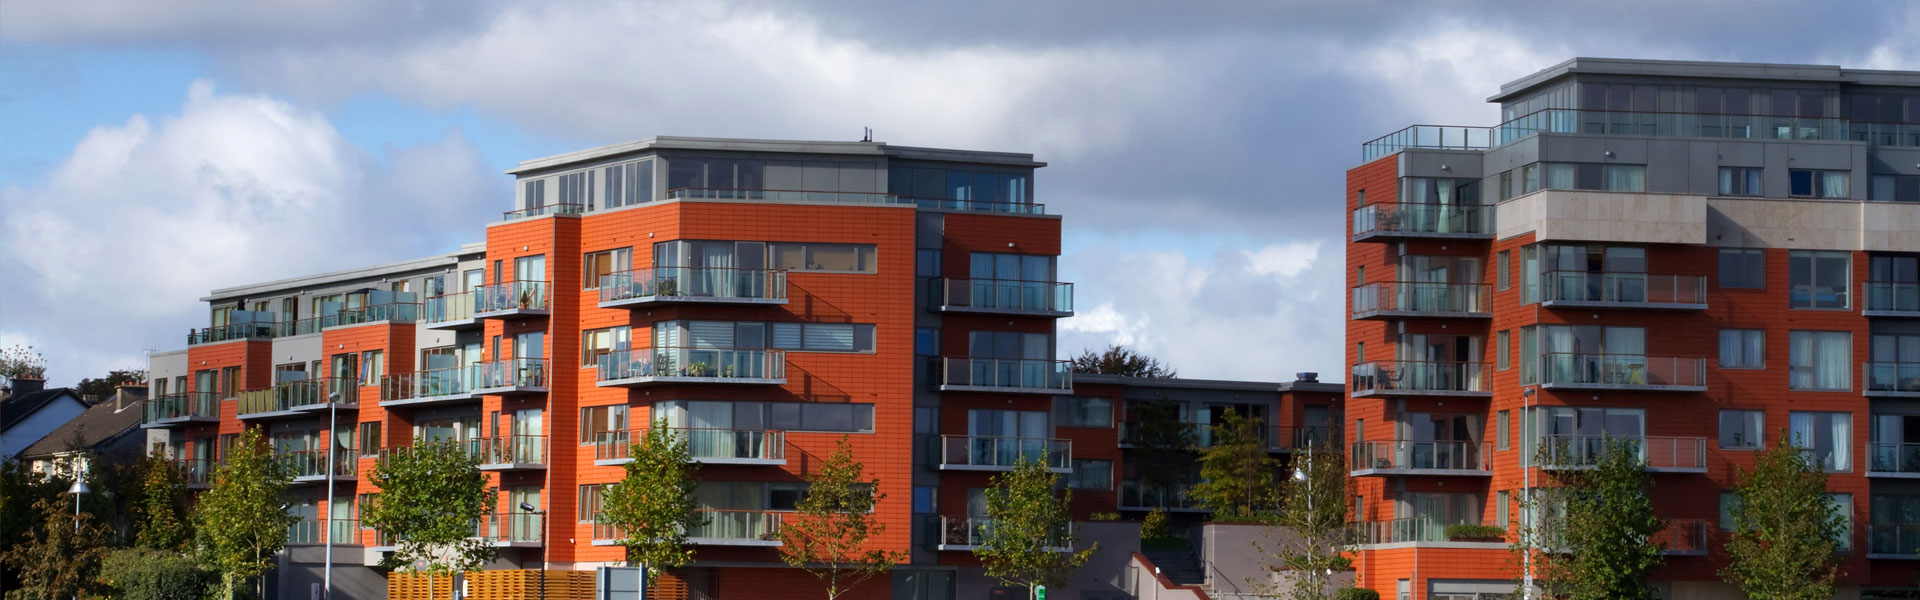 professional Commercial property management in Greenanstown